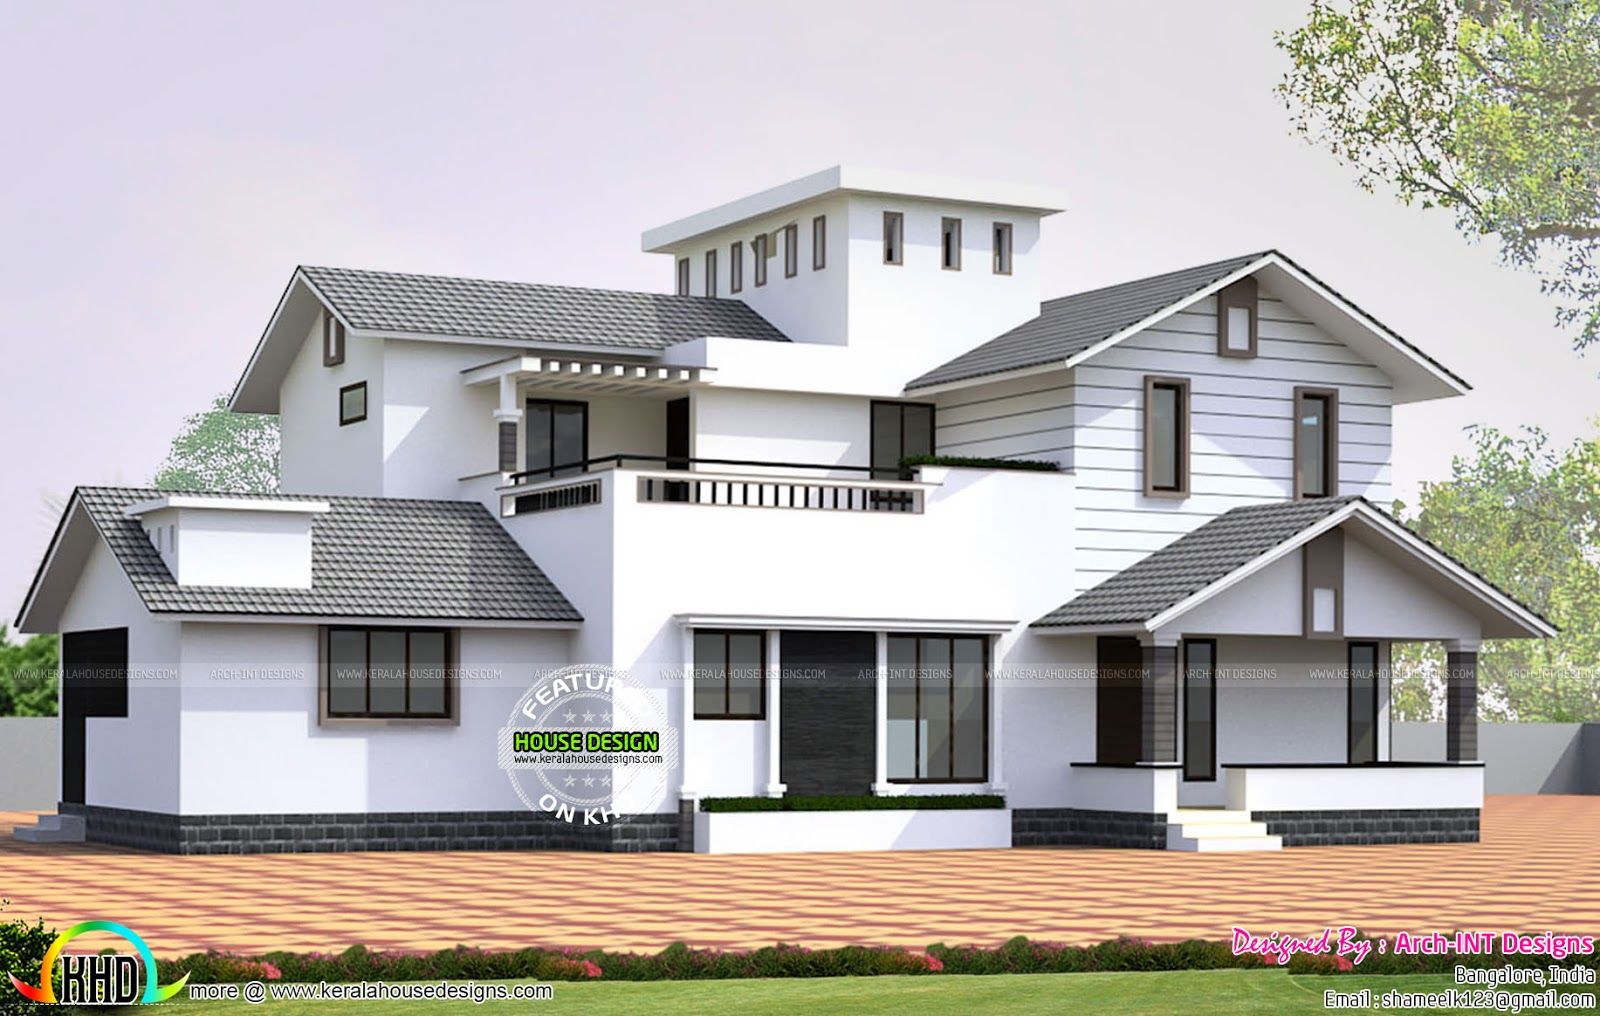 House plan by Arch-INT Designs, Bangalore | Kerala house ...